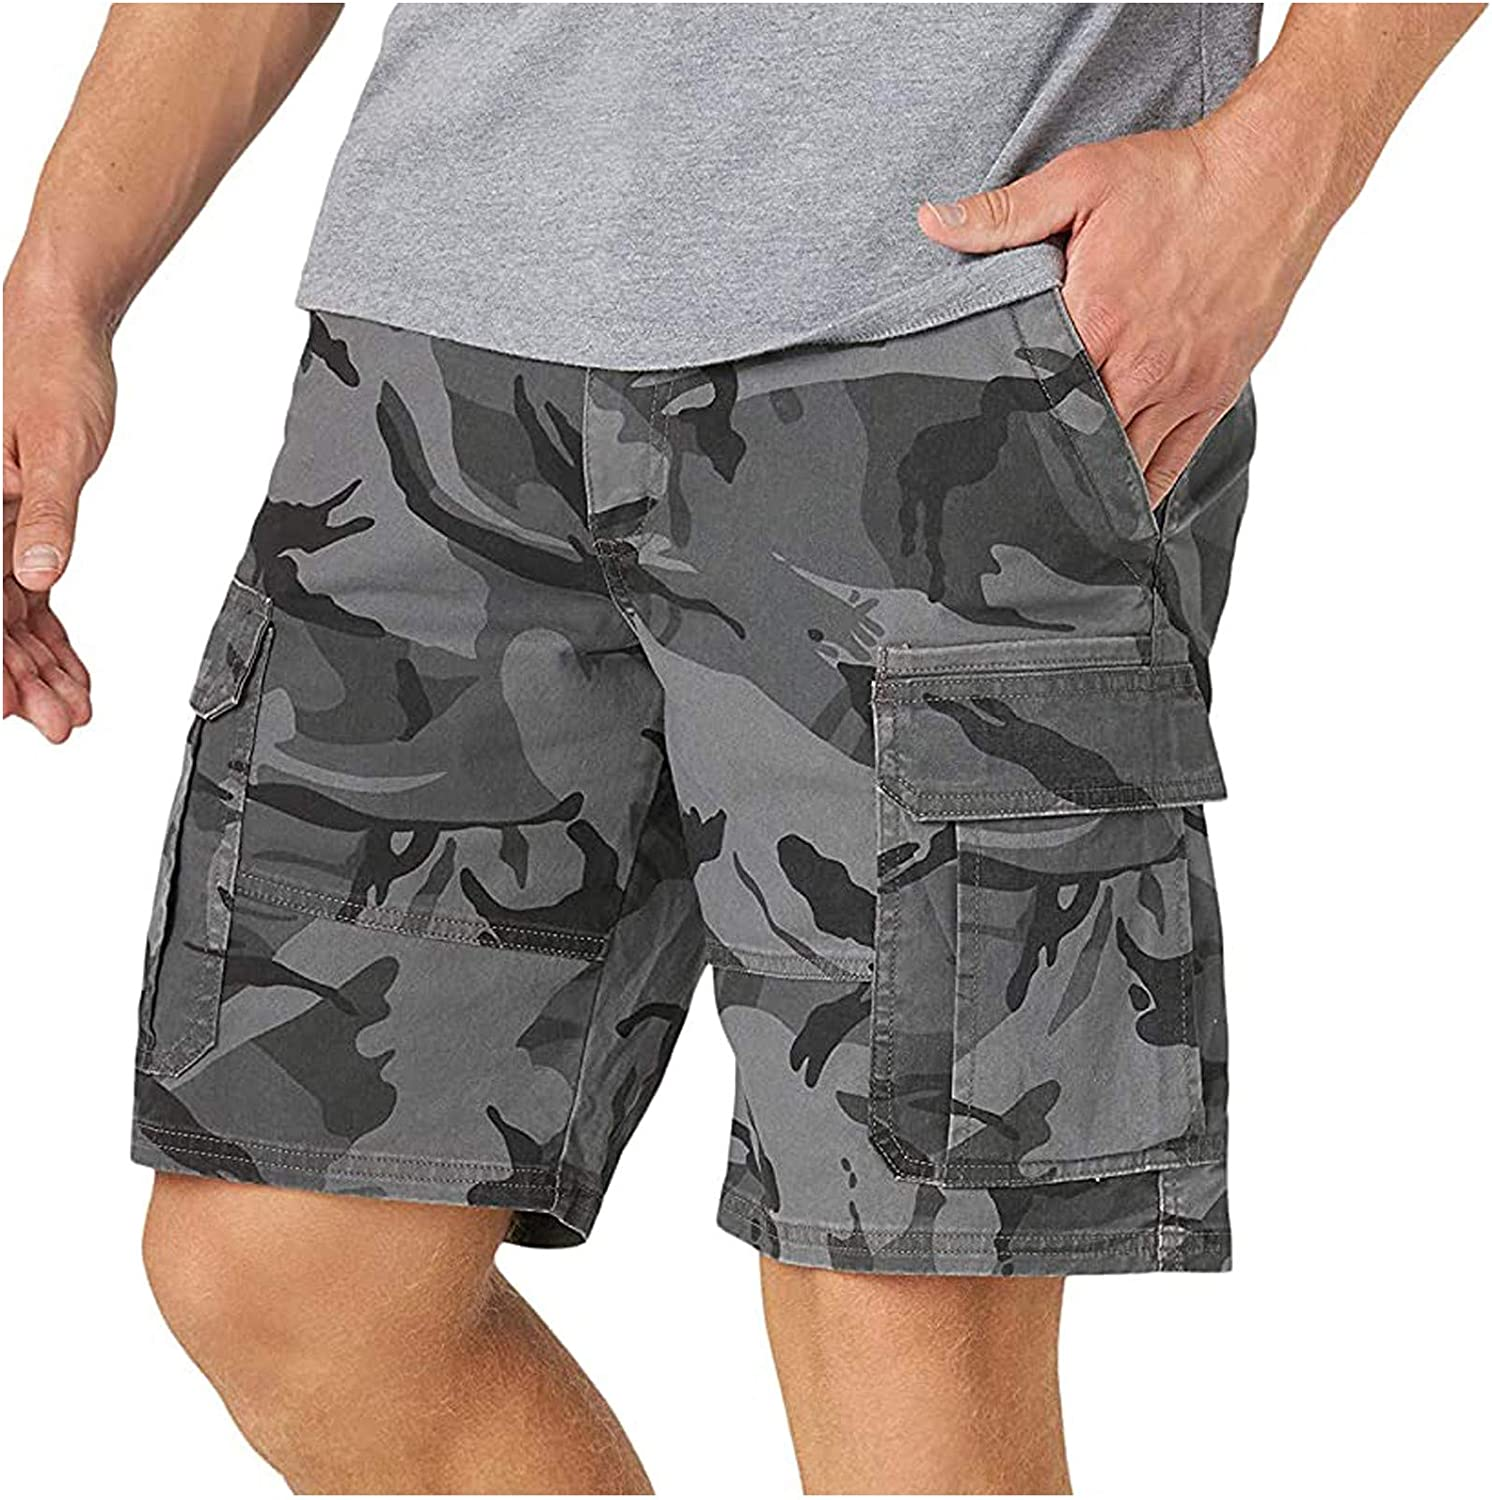 WUAI-Men Outdoors Cargo Shorts Relaxed Fit Multi-Pockets Outdoors Stretchy Twill Cotton Summer Beach Camo Shorts